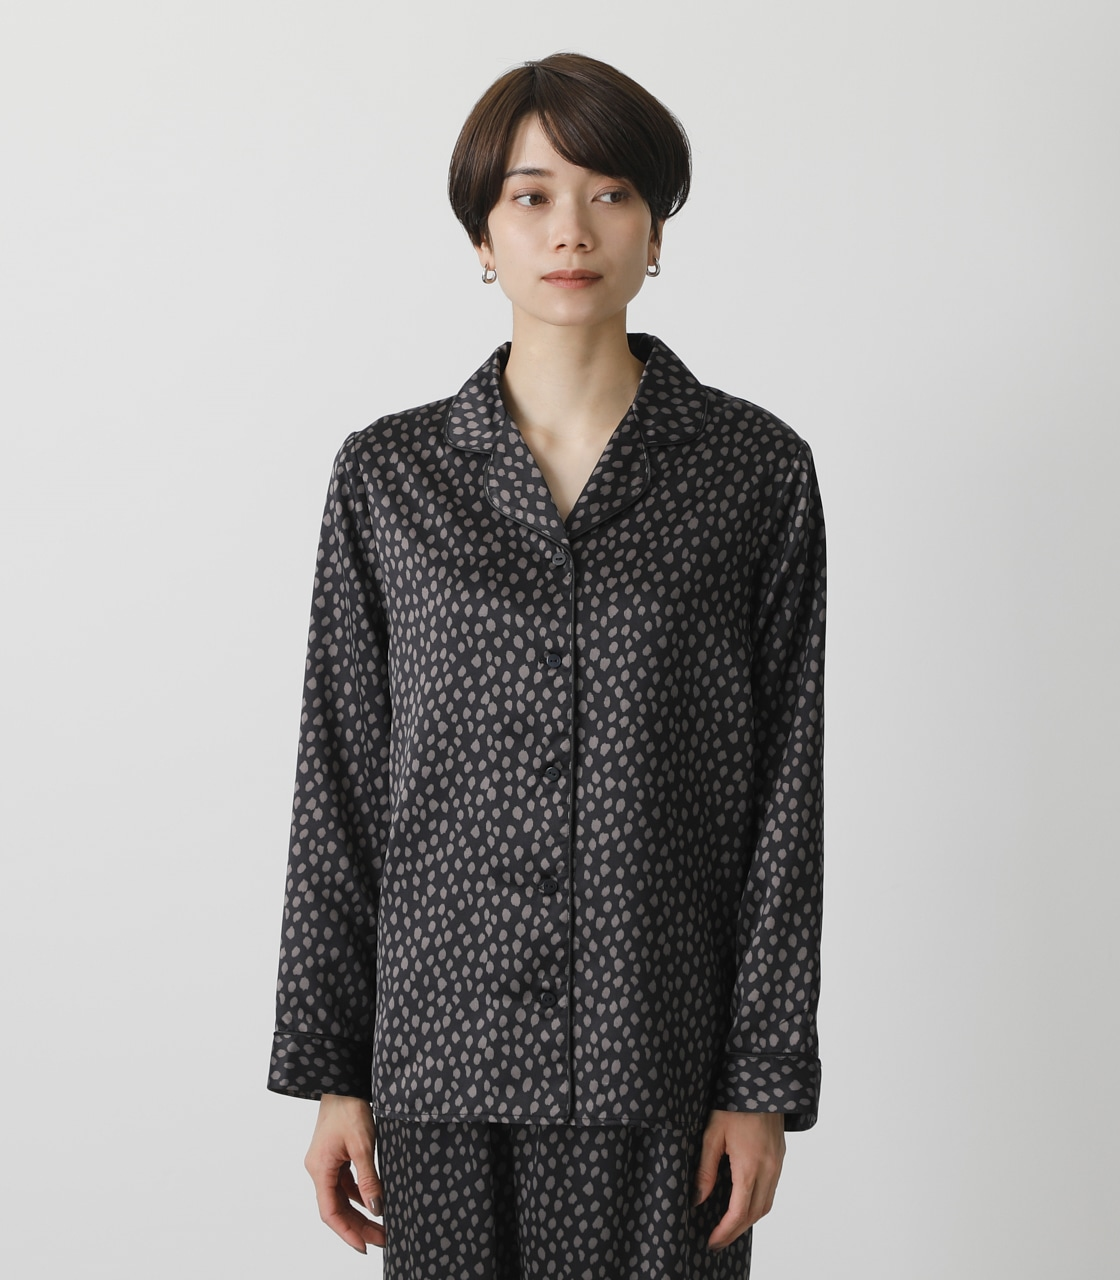 T/H SATIN L/S PAJAMAS/T/Hサテンロングスリーブパジャマ 詳細画像 柄BLK 8